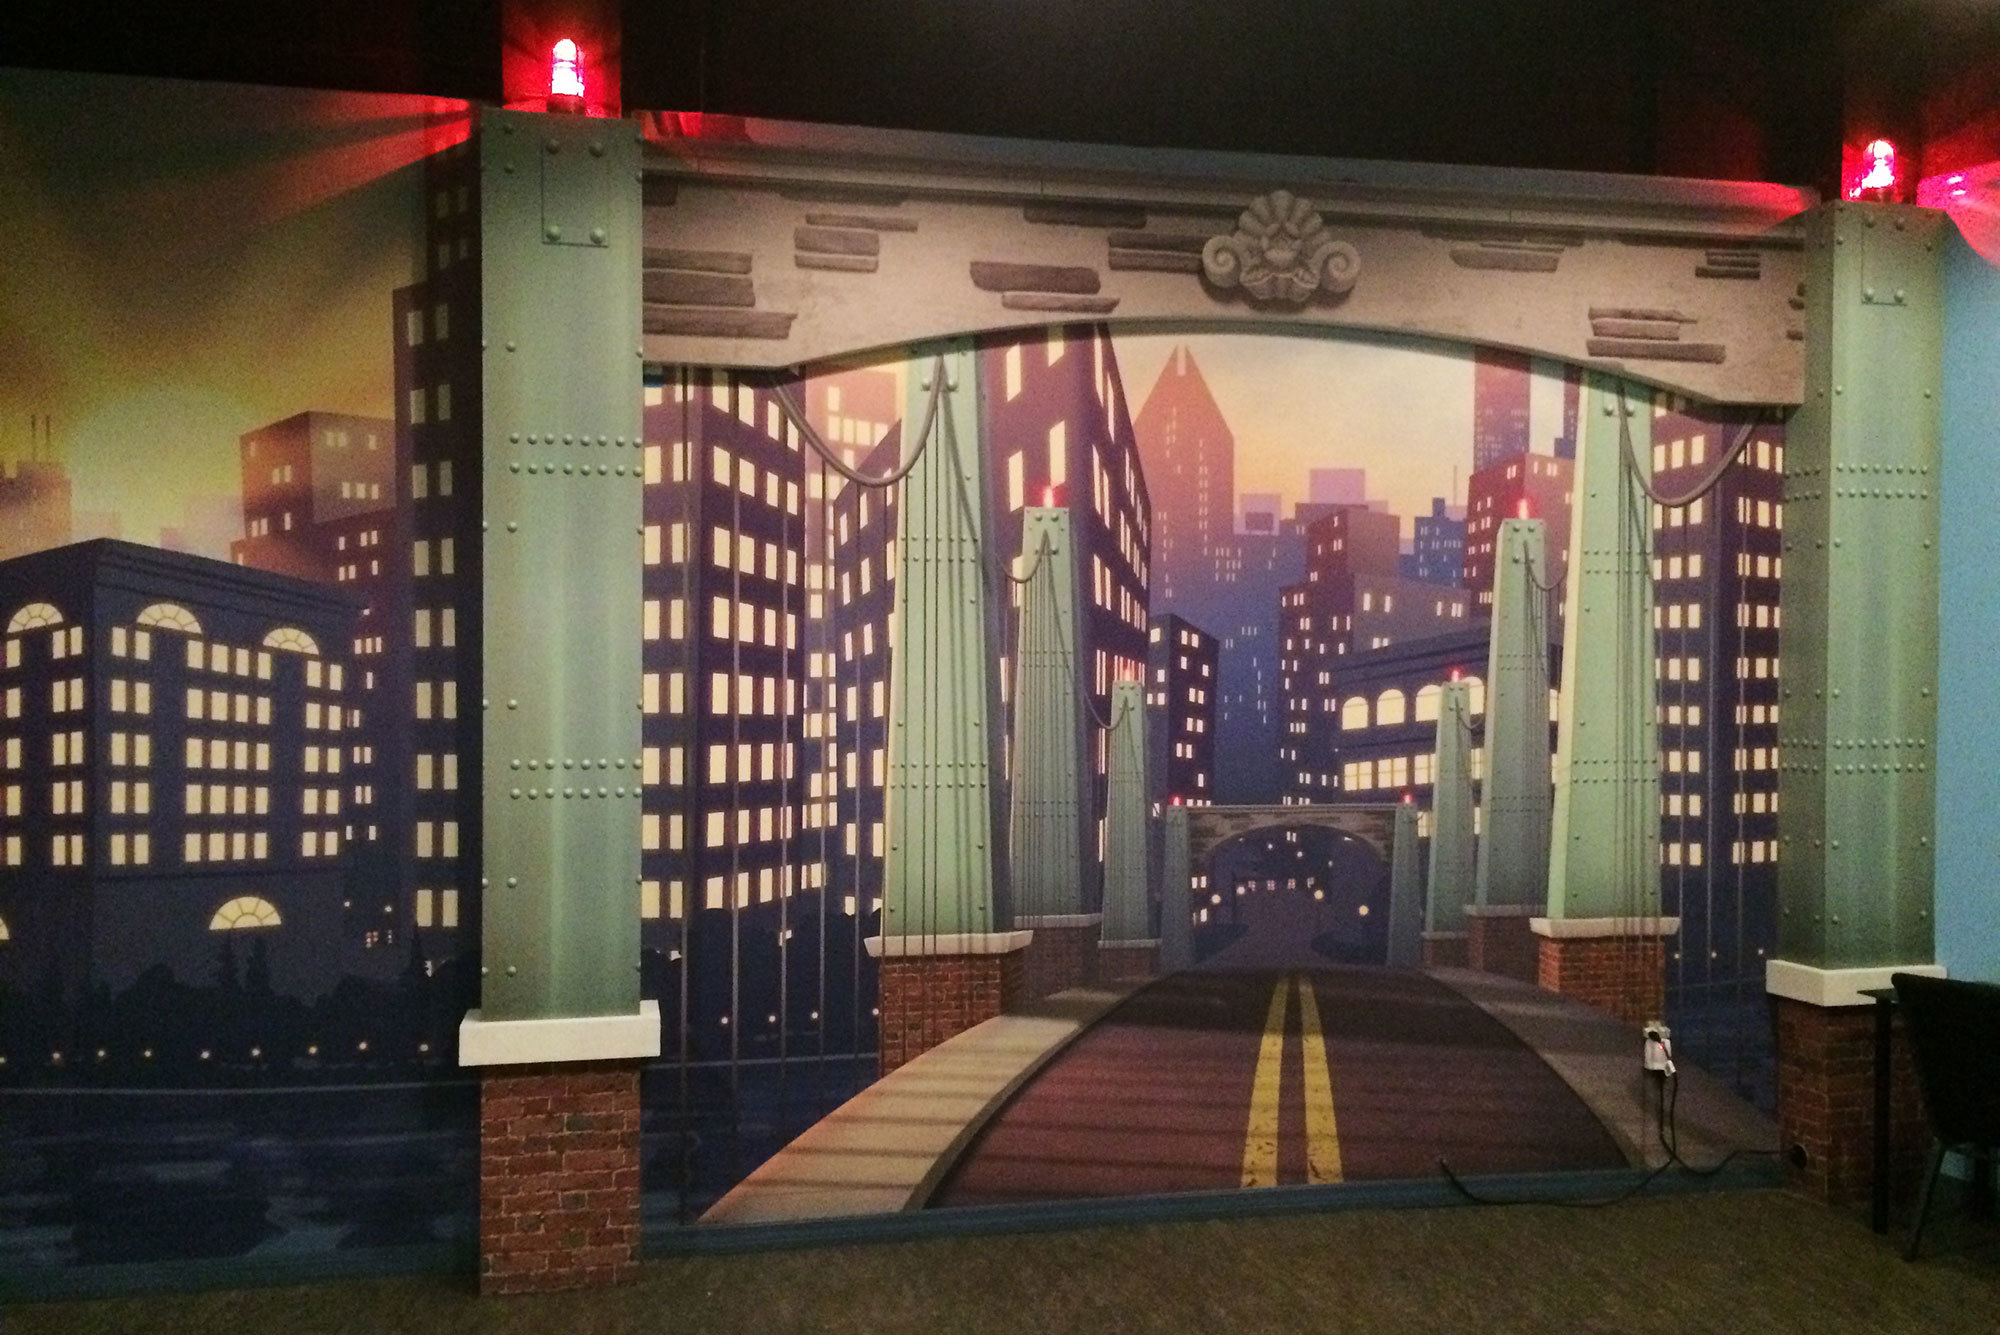 Big City Themed Wall Covering at Relevant Church Tampa